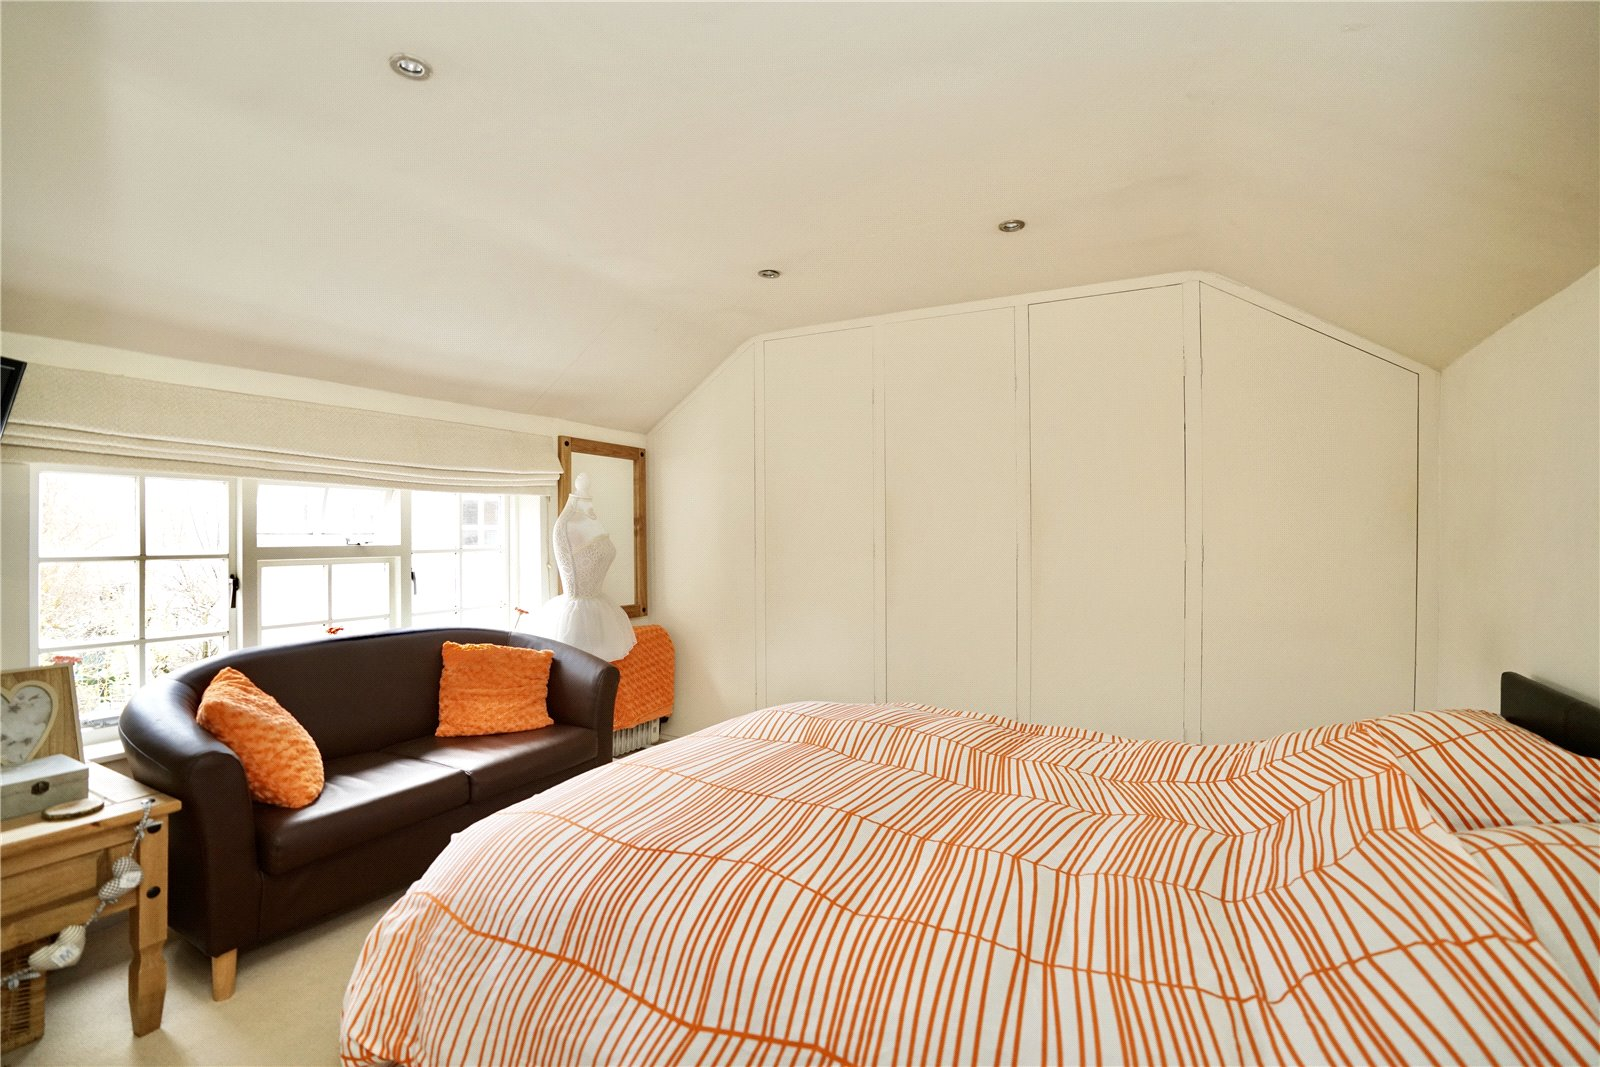 4 bed for sale in The Town, Great Staughton  - Property Image 8